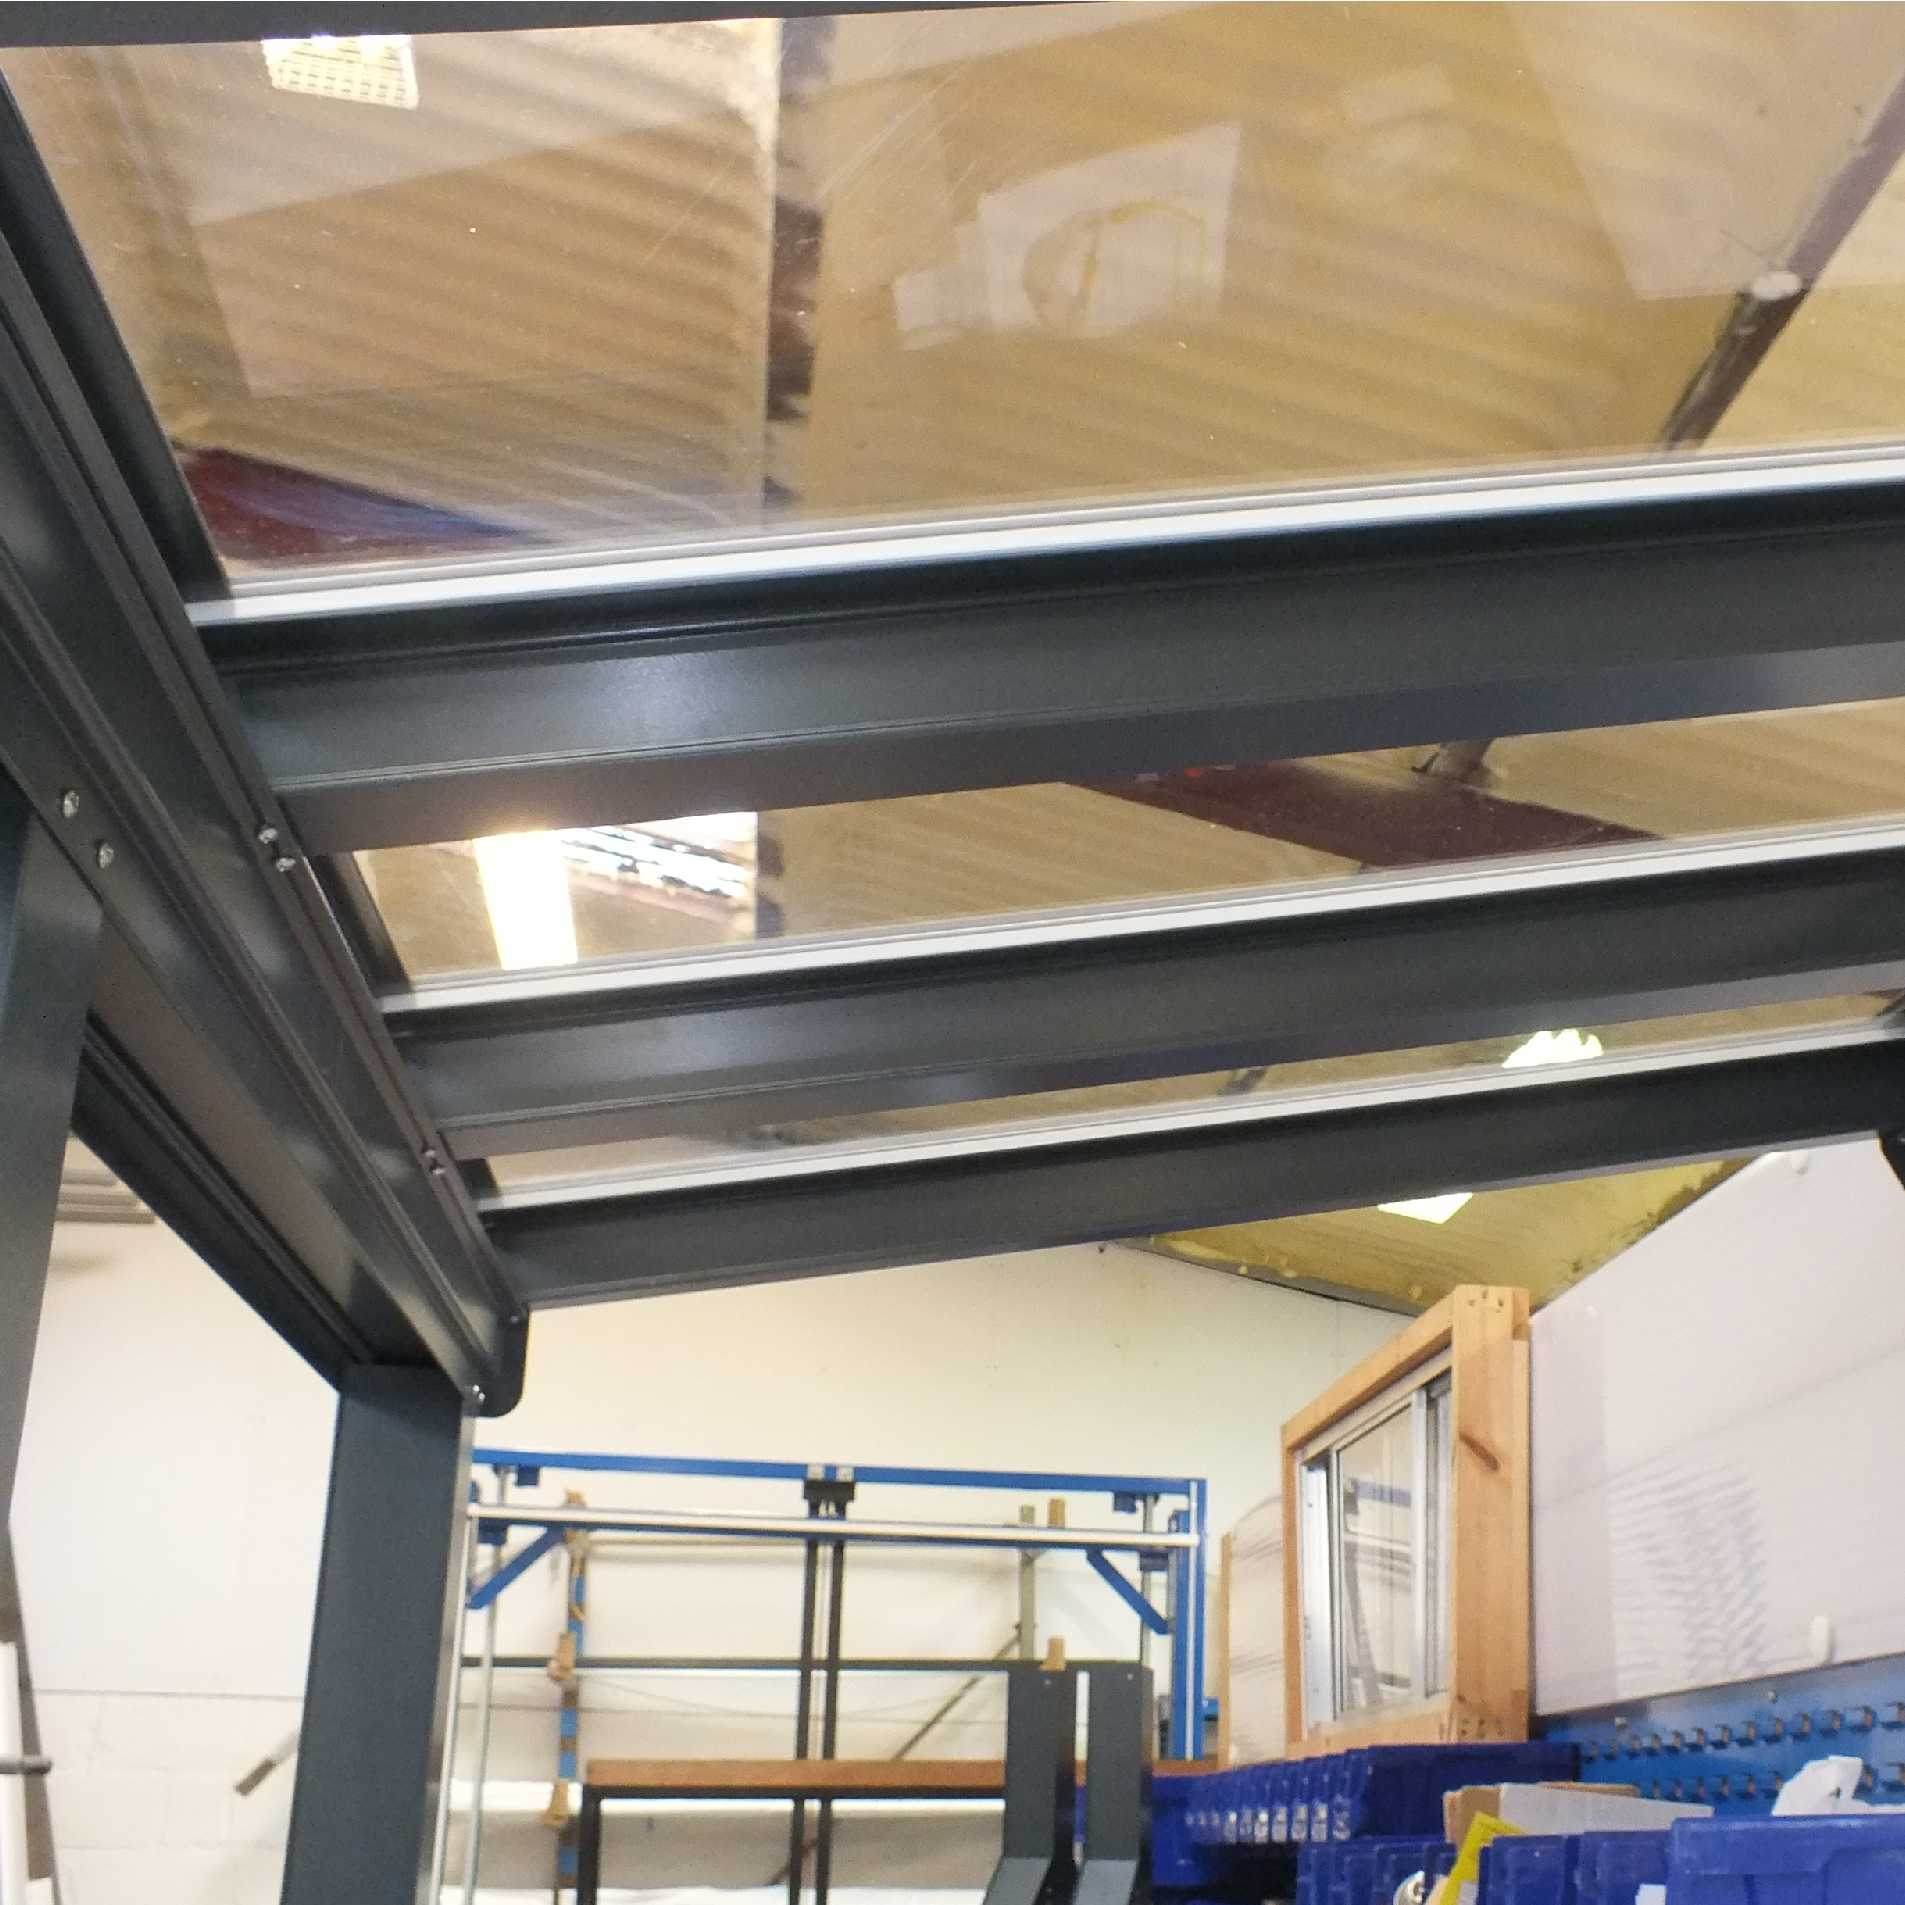 Great deals on Omega Smart Lean-To Canopy, Anthracite Grey, 6mm Glass Clear Plate Polycarbonate Glazing - 7.0m (W) x 3.0m (P), (4) Supporting Posts